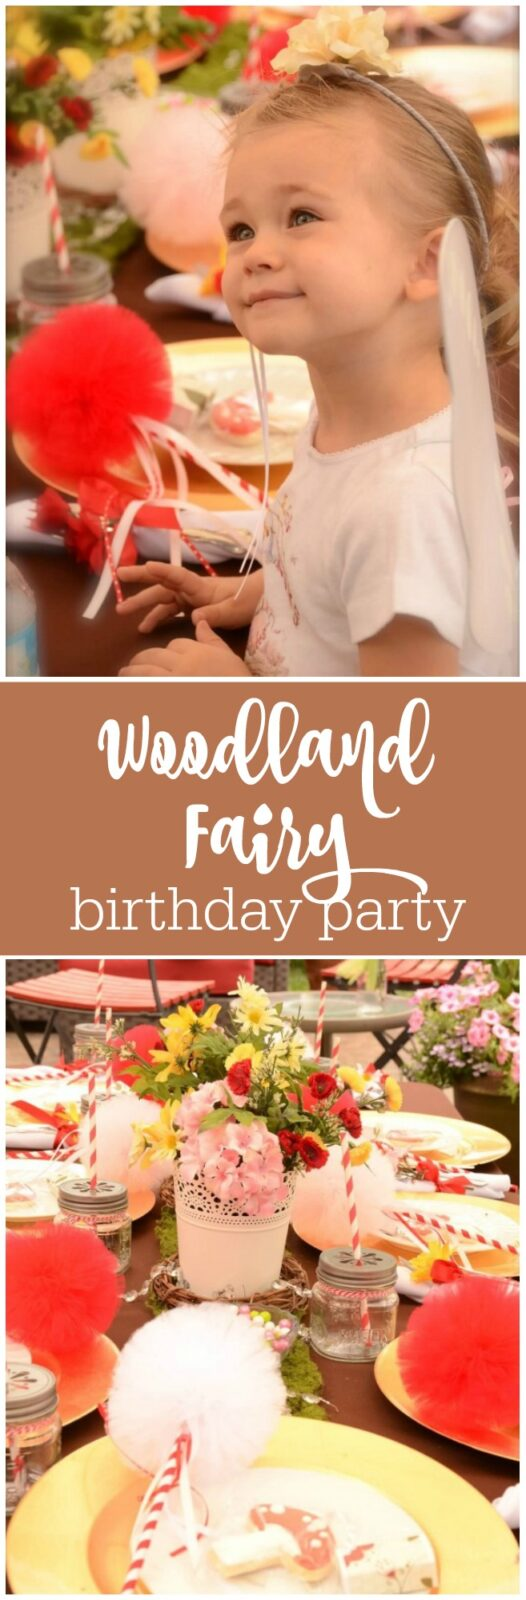 Charming woodland fairy birthday party in reds, pinks, and browns featured on The Party Teacher